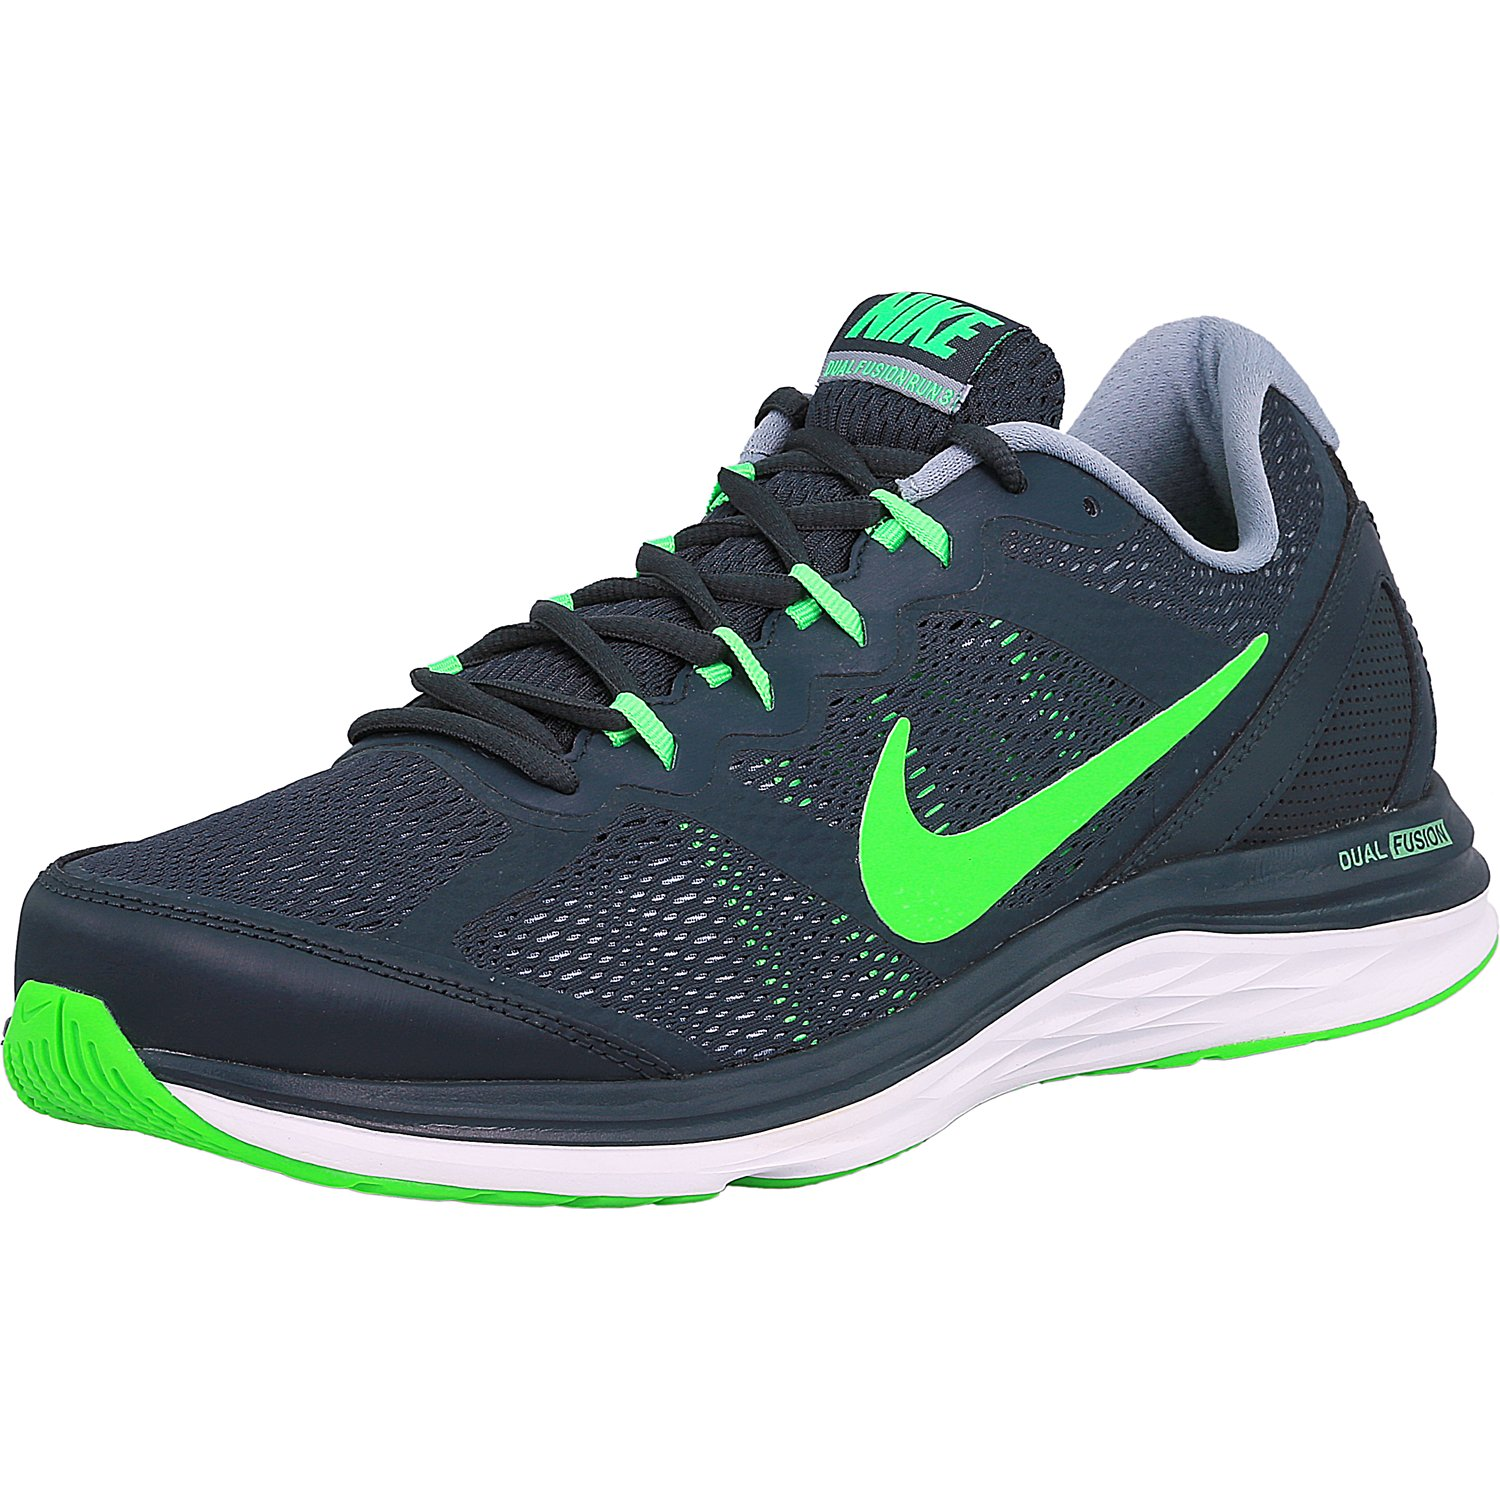 Nike Men's 653596 024 Ankle-High Cross Trainer Shoe - 11.5M